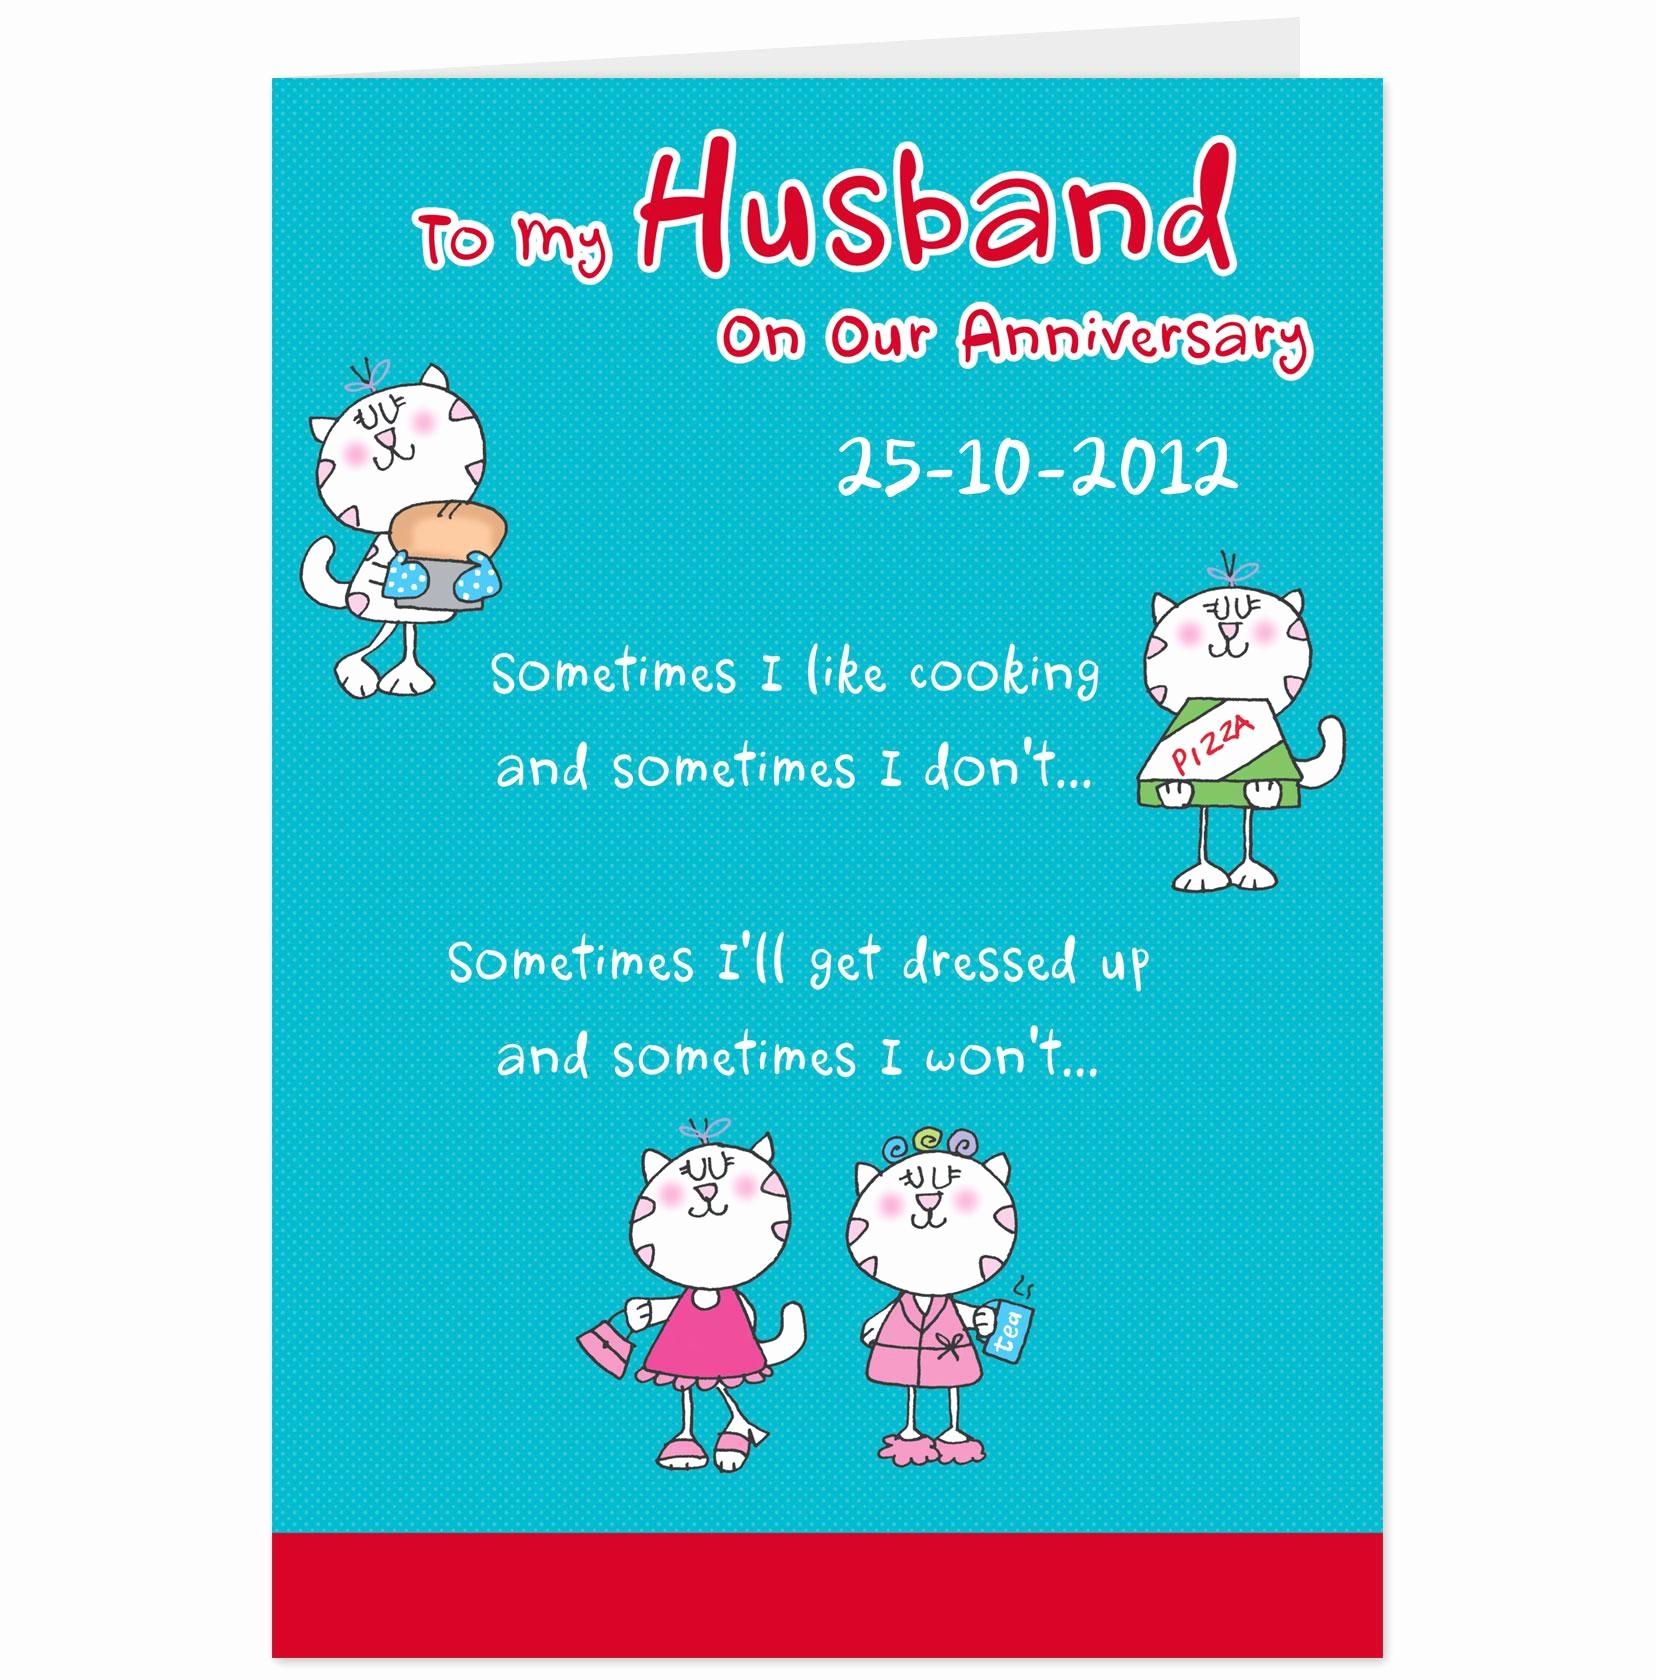 birthday card message for husband funny ; birthday-card-message-for-husband-funny-unique-anniversary-card-poems-poems-of-birthday-card-message-for-husband-funny